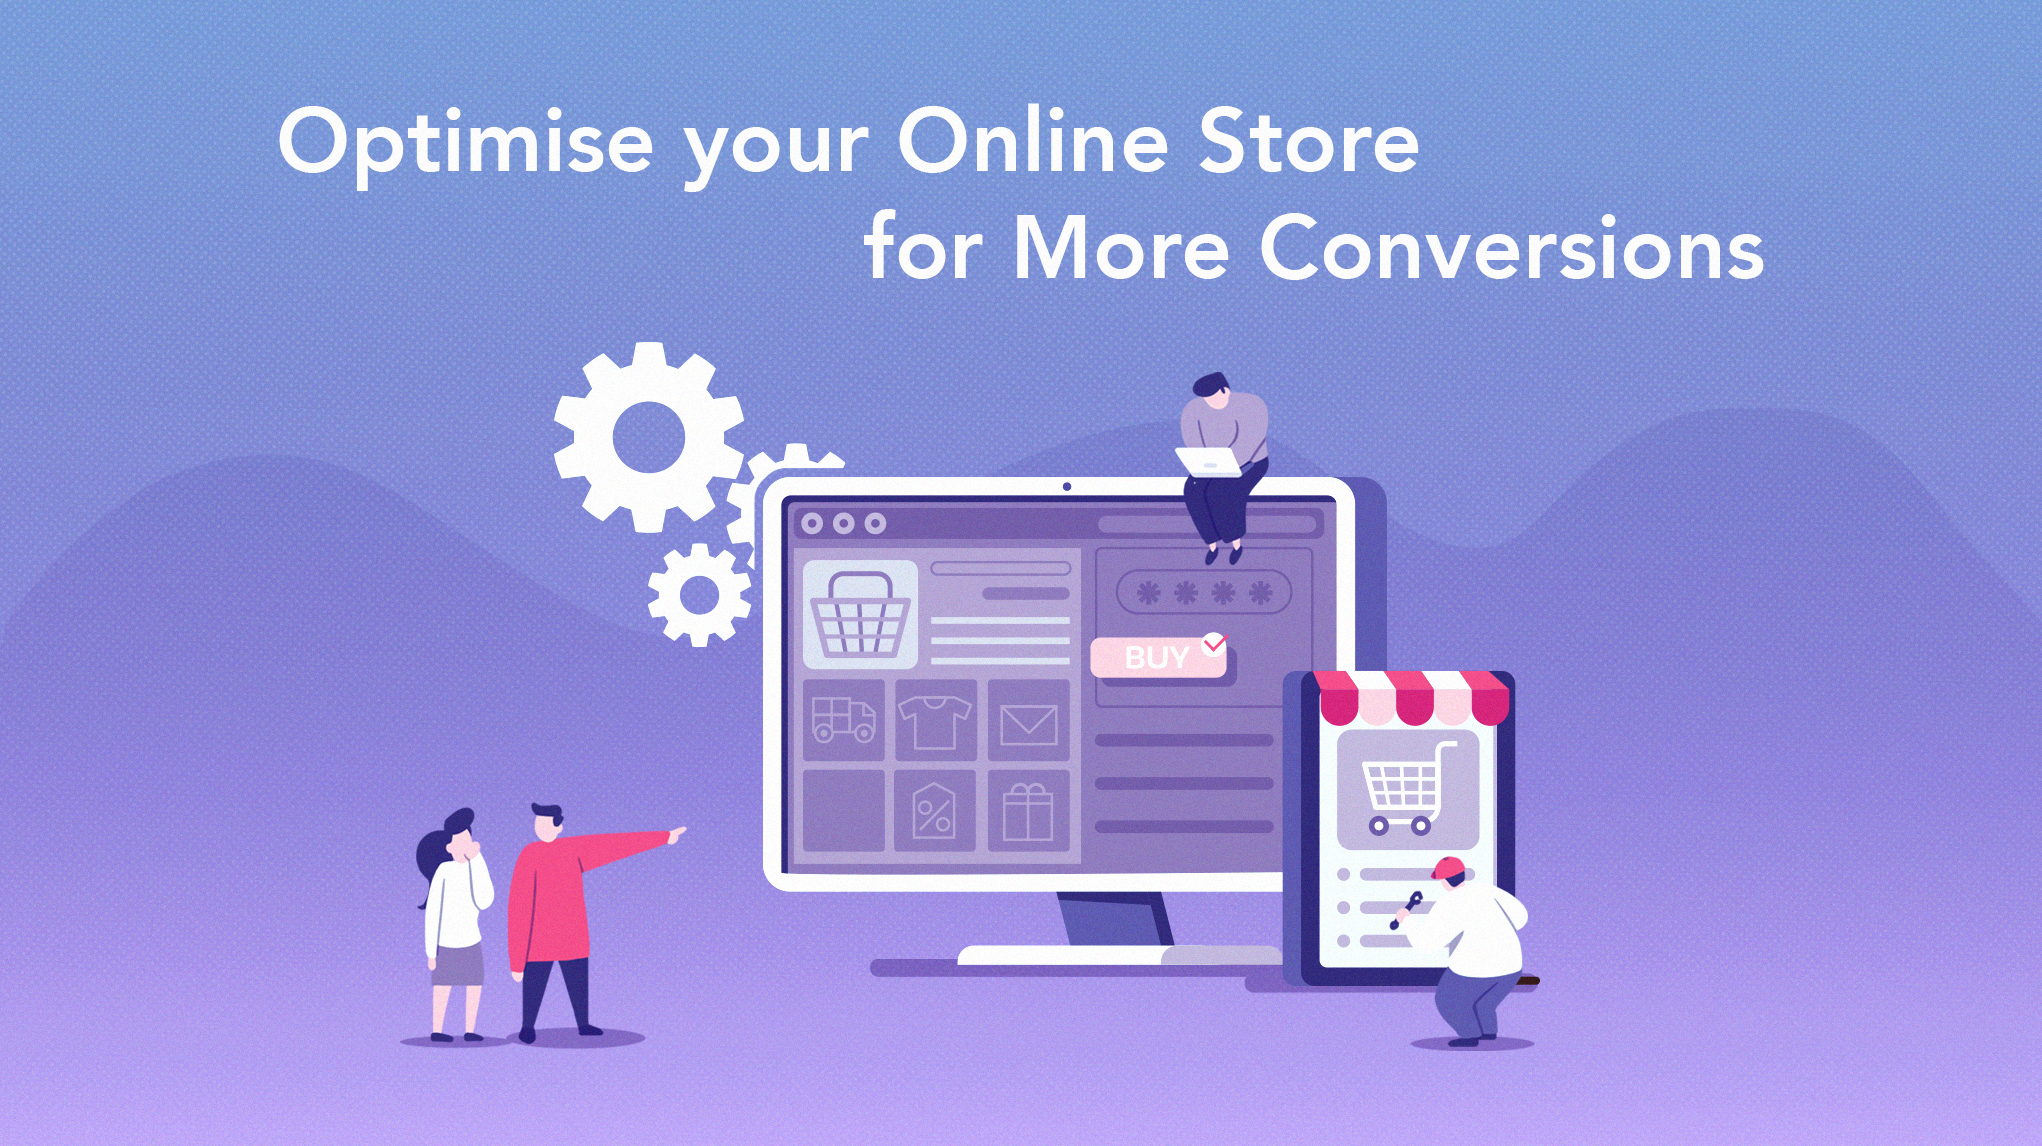 Optimise Your Online Store for More Conversions